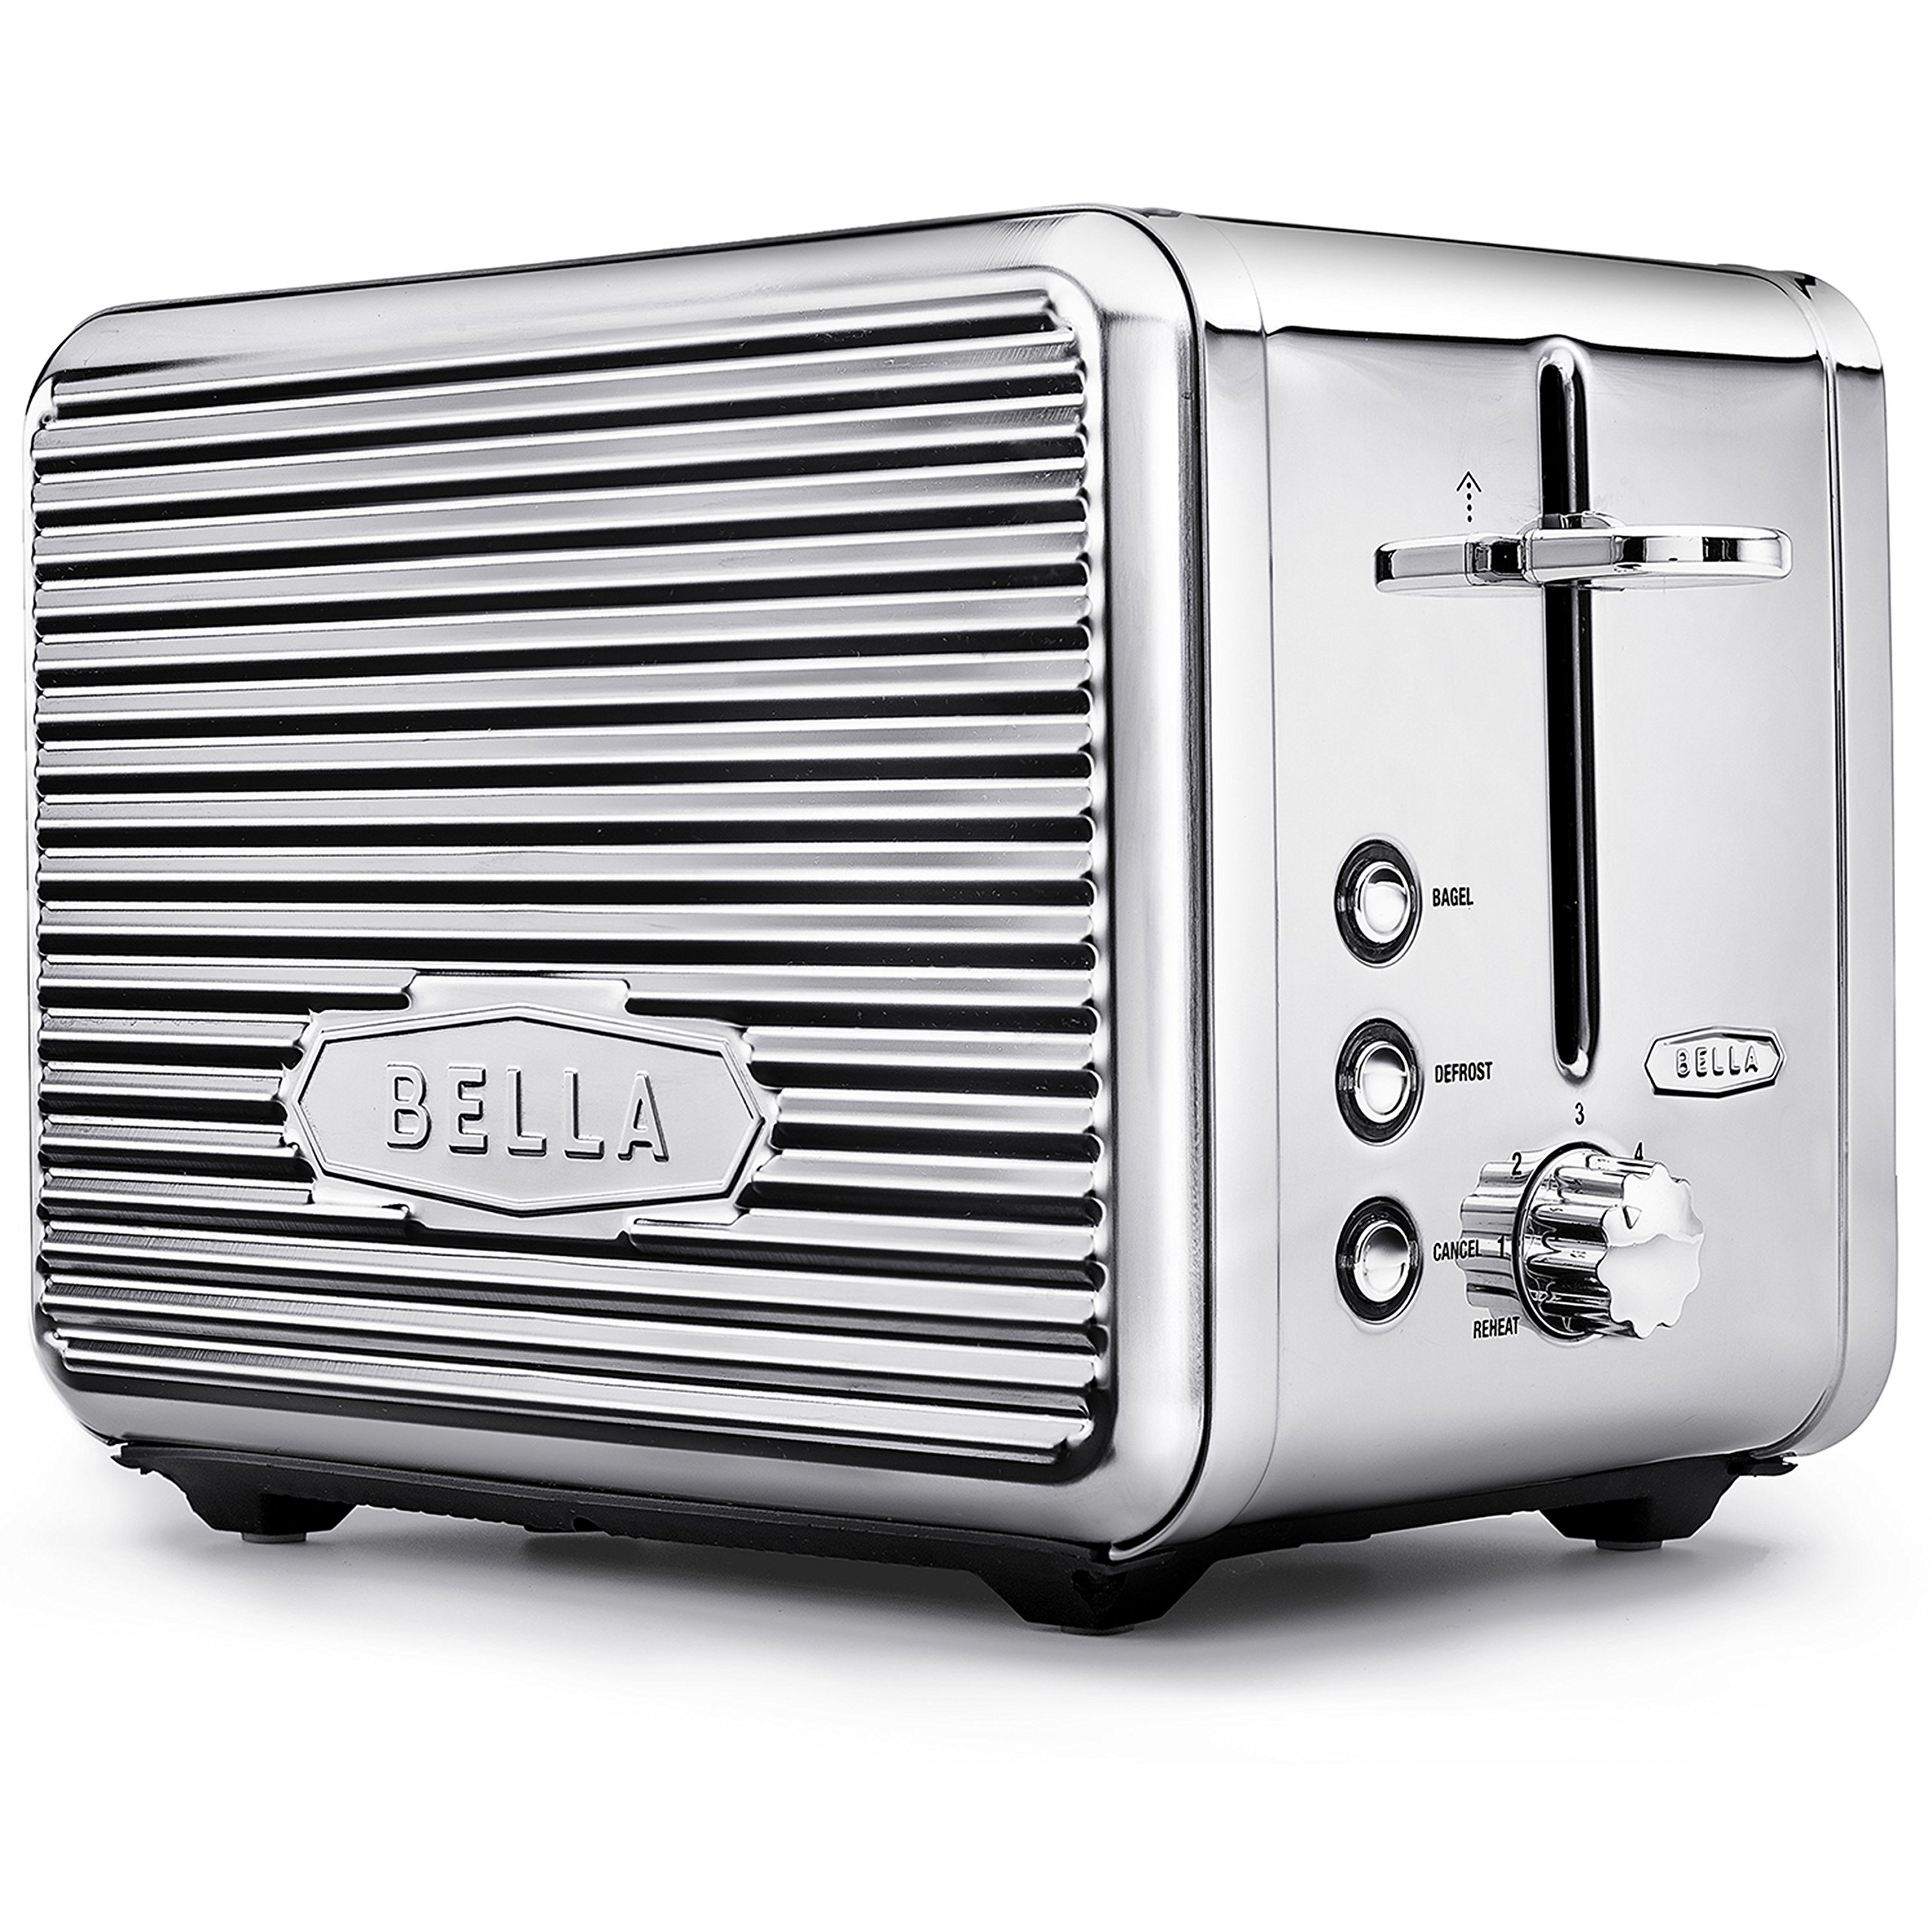 BELLA (14387) Linea Collection 2 Slice Toaster with Extra Wide Slot, Polished Stainless Steel by BELLA